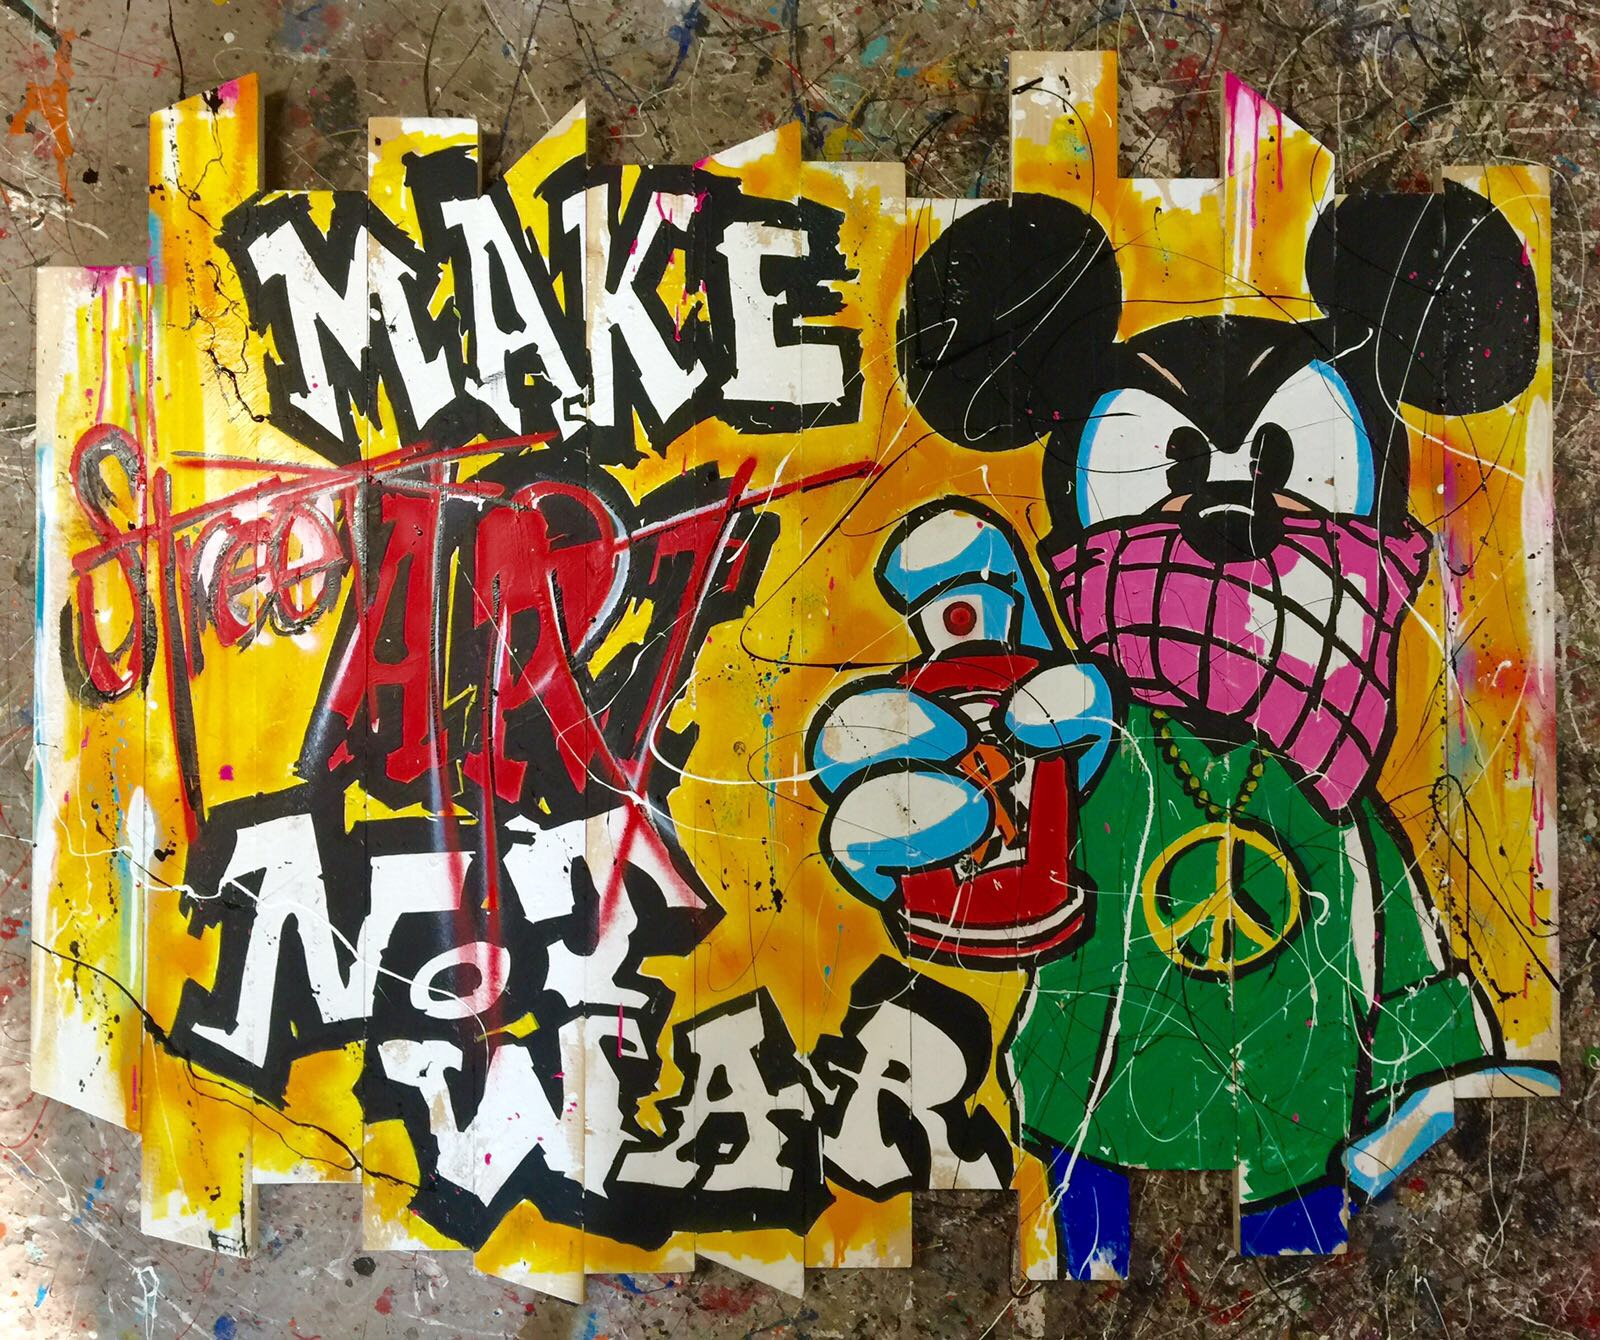 Mickey Make Street not Wars